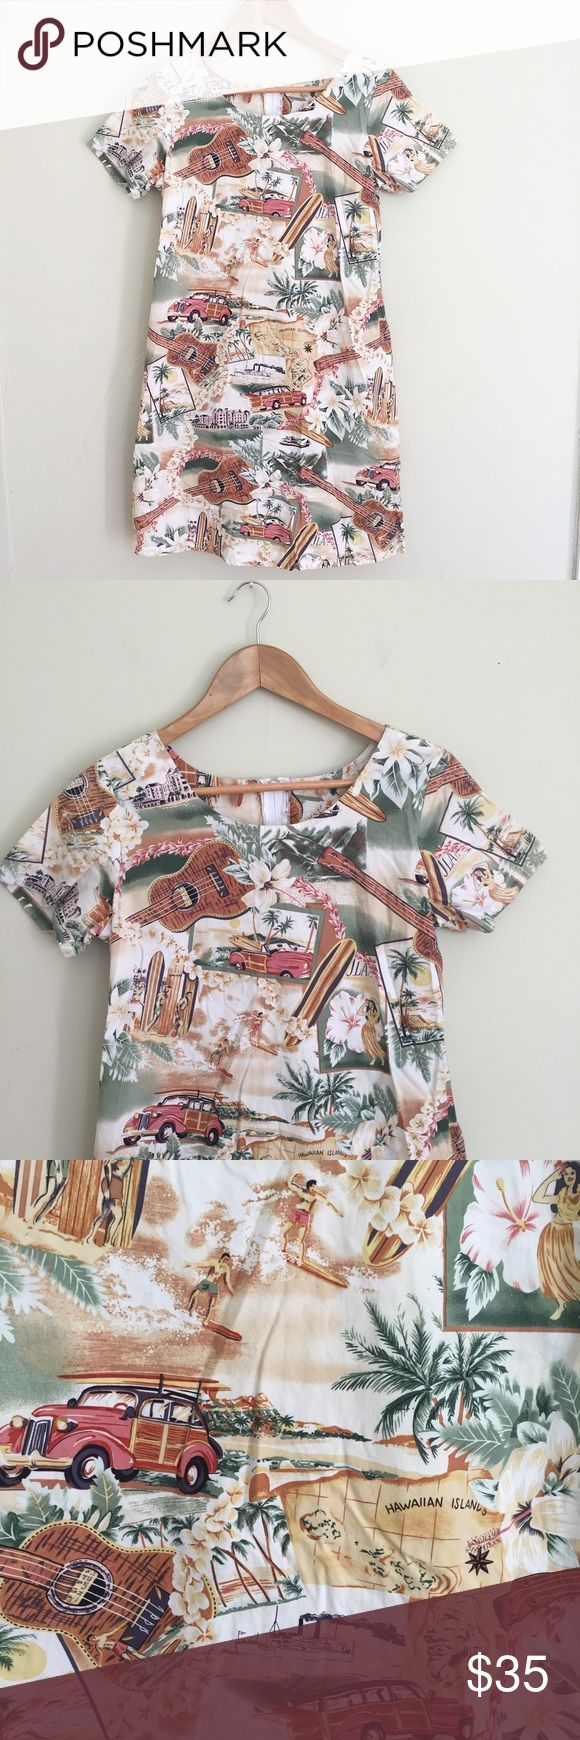 "Vintage Hawaiian Ukulele Surfboard T Shirt Dress Adorable cotton t shirt dress with zip back. 34"" long, 18.5"" pit to pit. No trades, offers welcome! Vintage Dresses Mini"